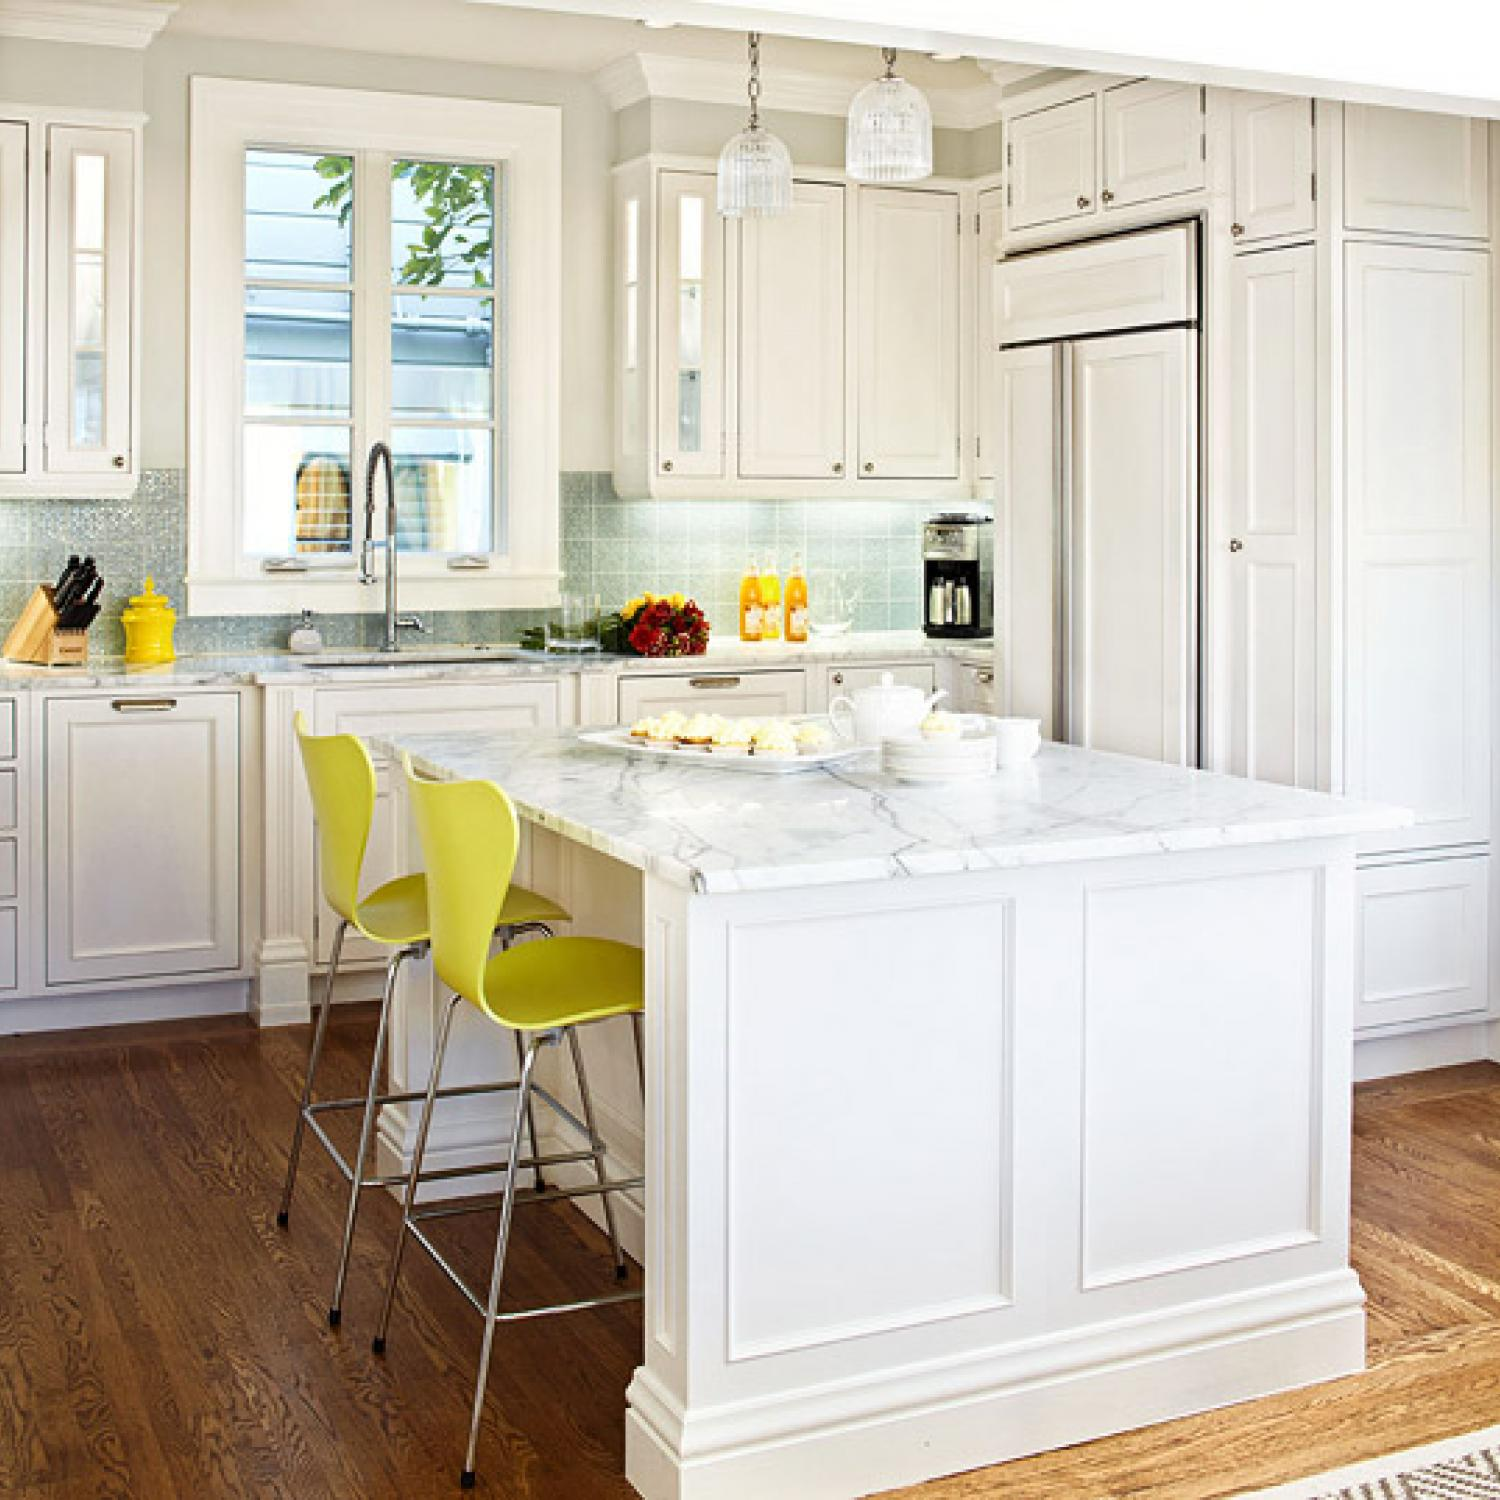 kitchen designs ideas.  Design Ideas for White Kitchens Traditional Home